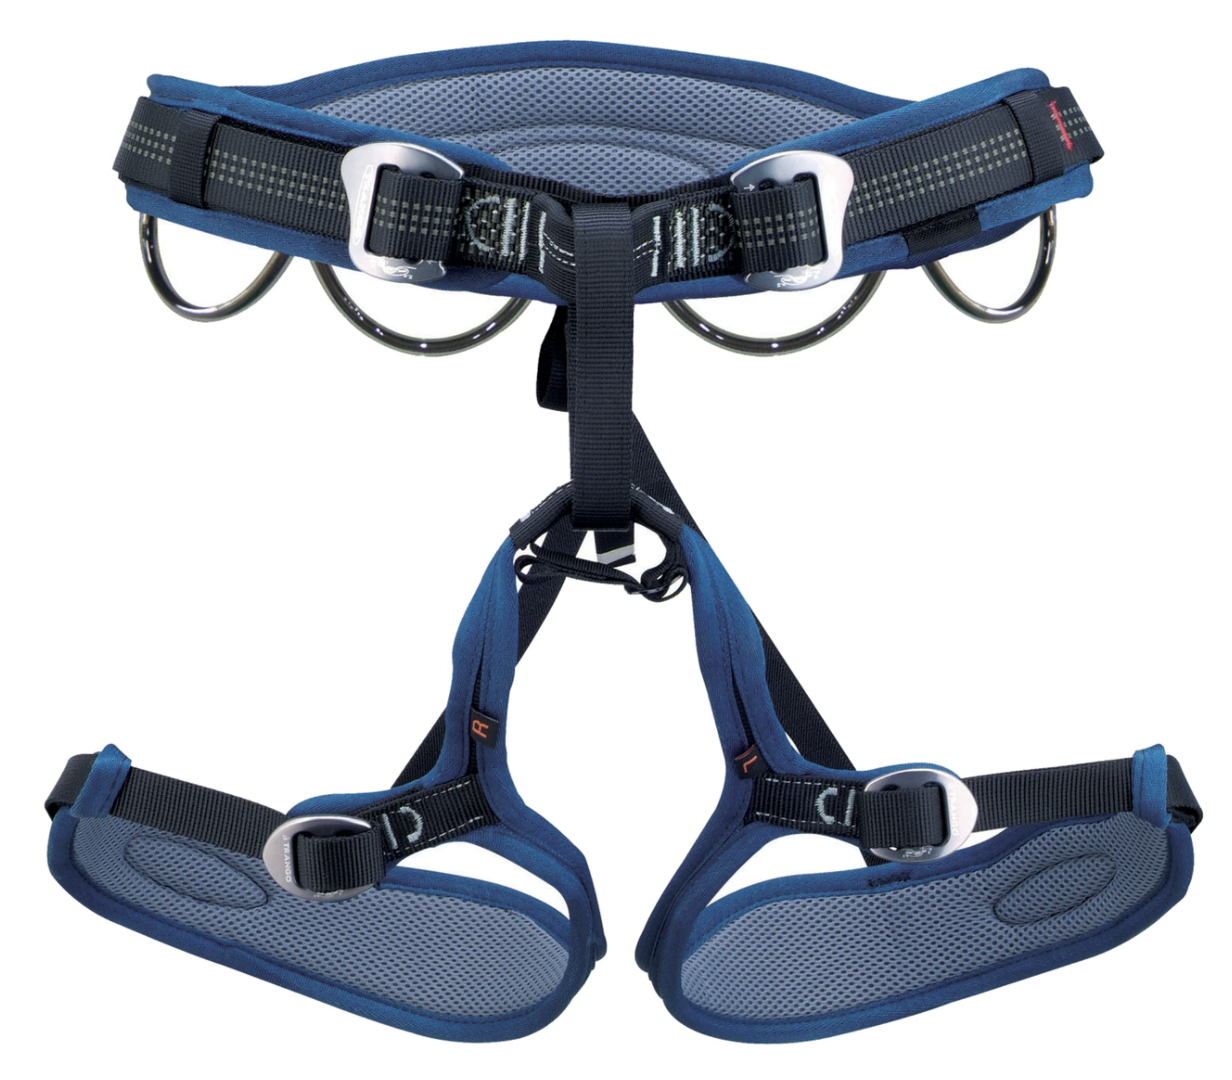 Trango Liberty Climbing Harness